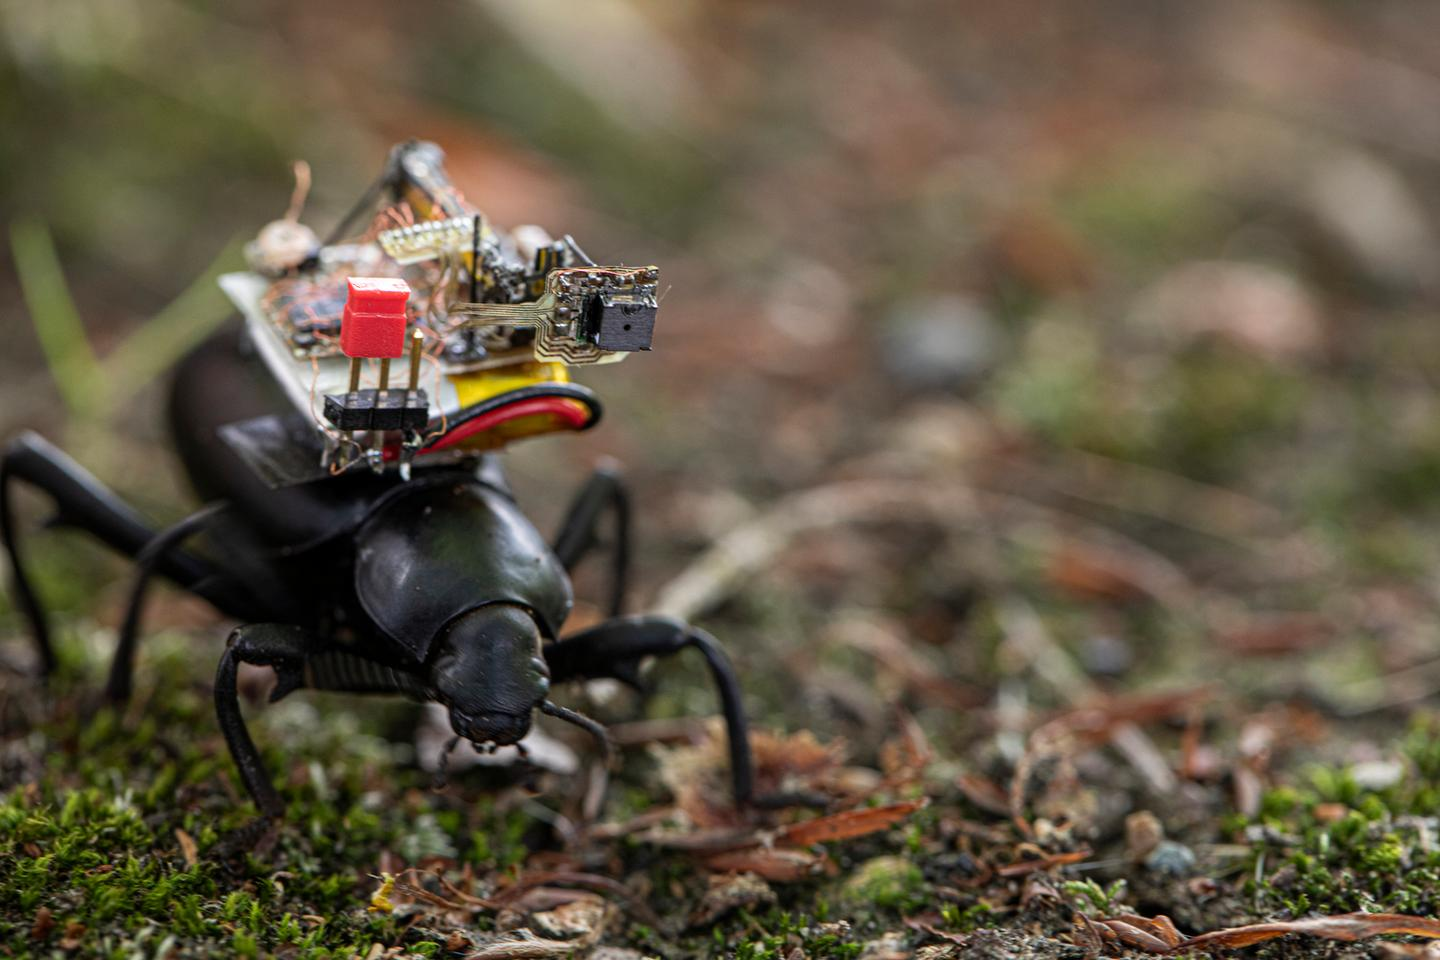 A beetle dons an electronic backpack containing a tiny camera